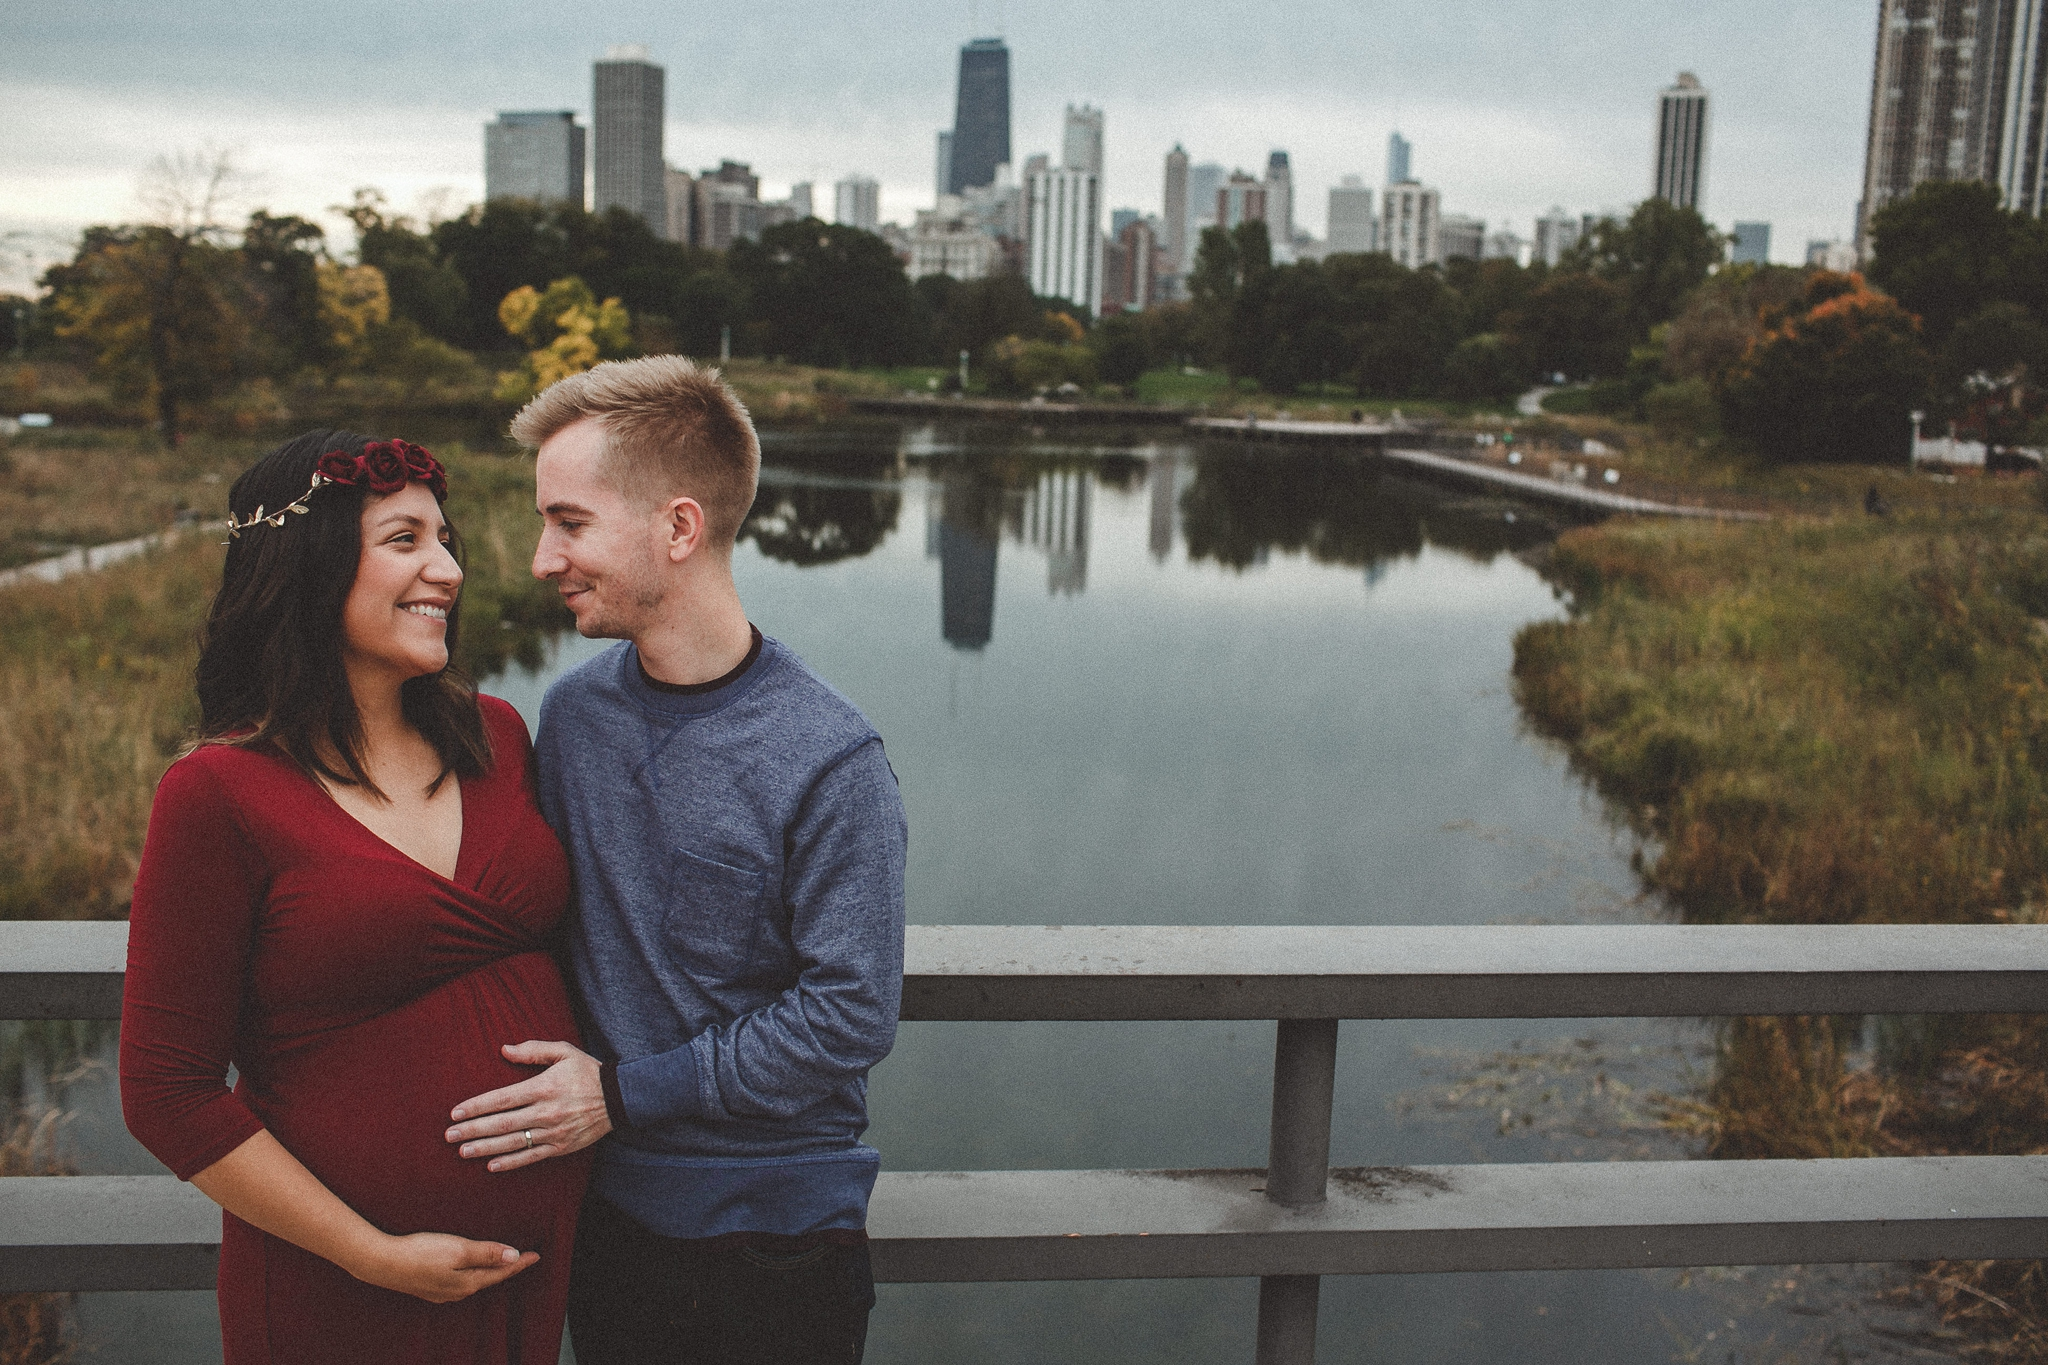 chicago_lincoln_park_family_maternity_photograper_0001.jpg